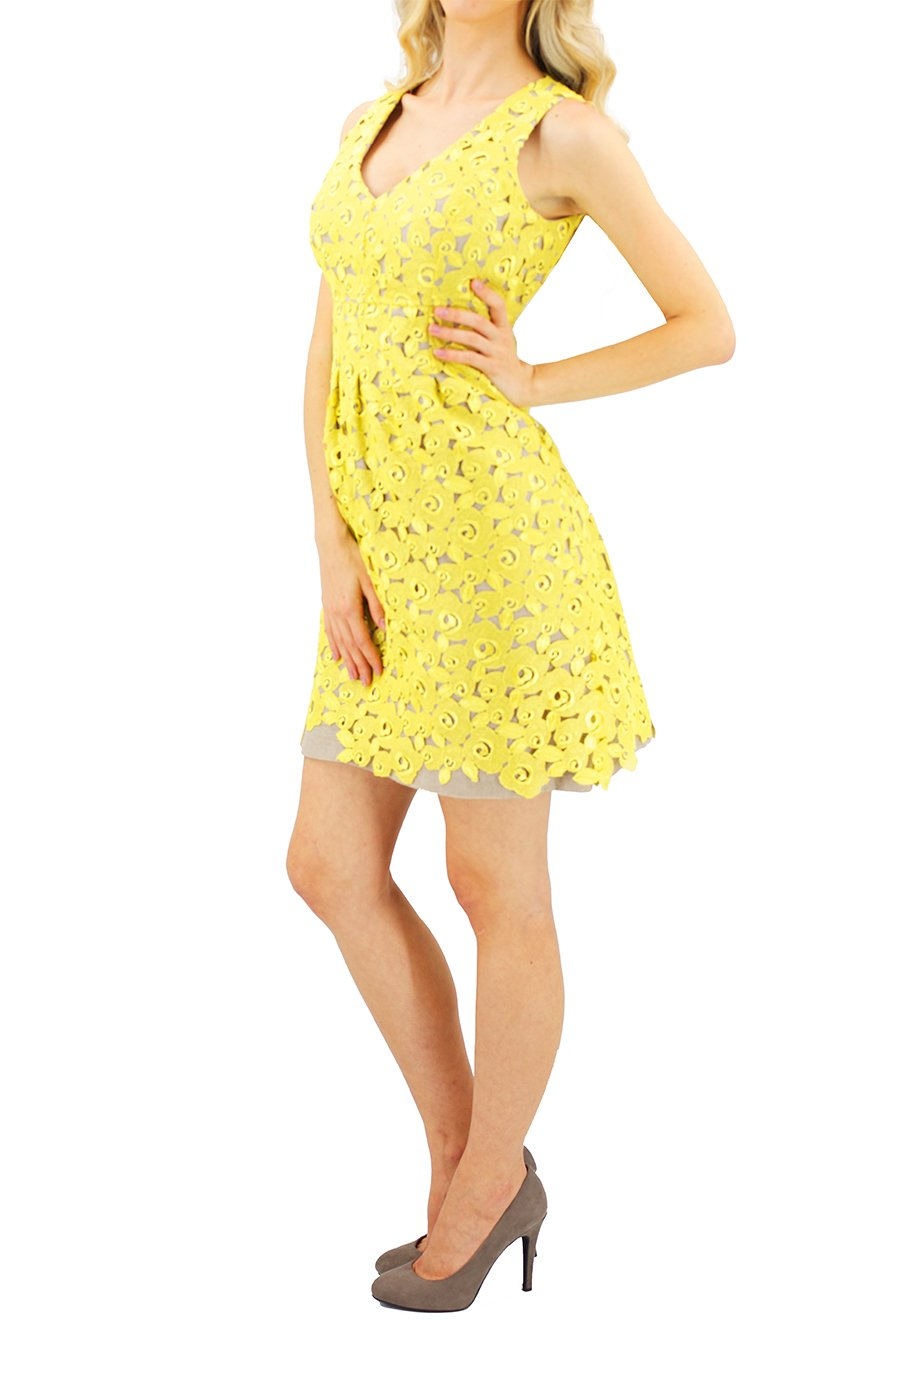 Lela Rose Short Yellow Embroidered Dress